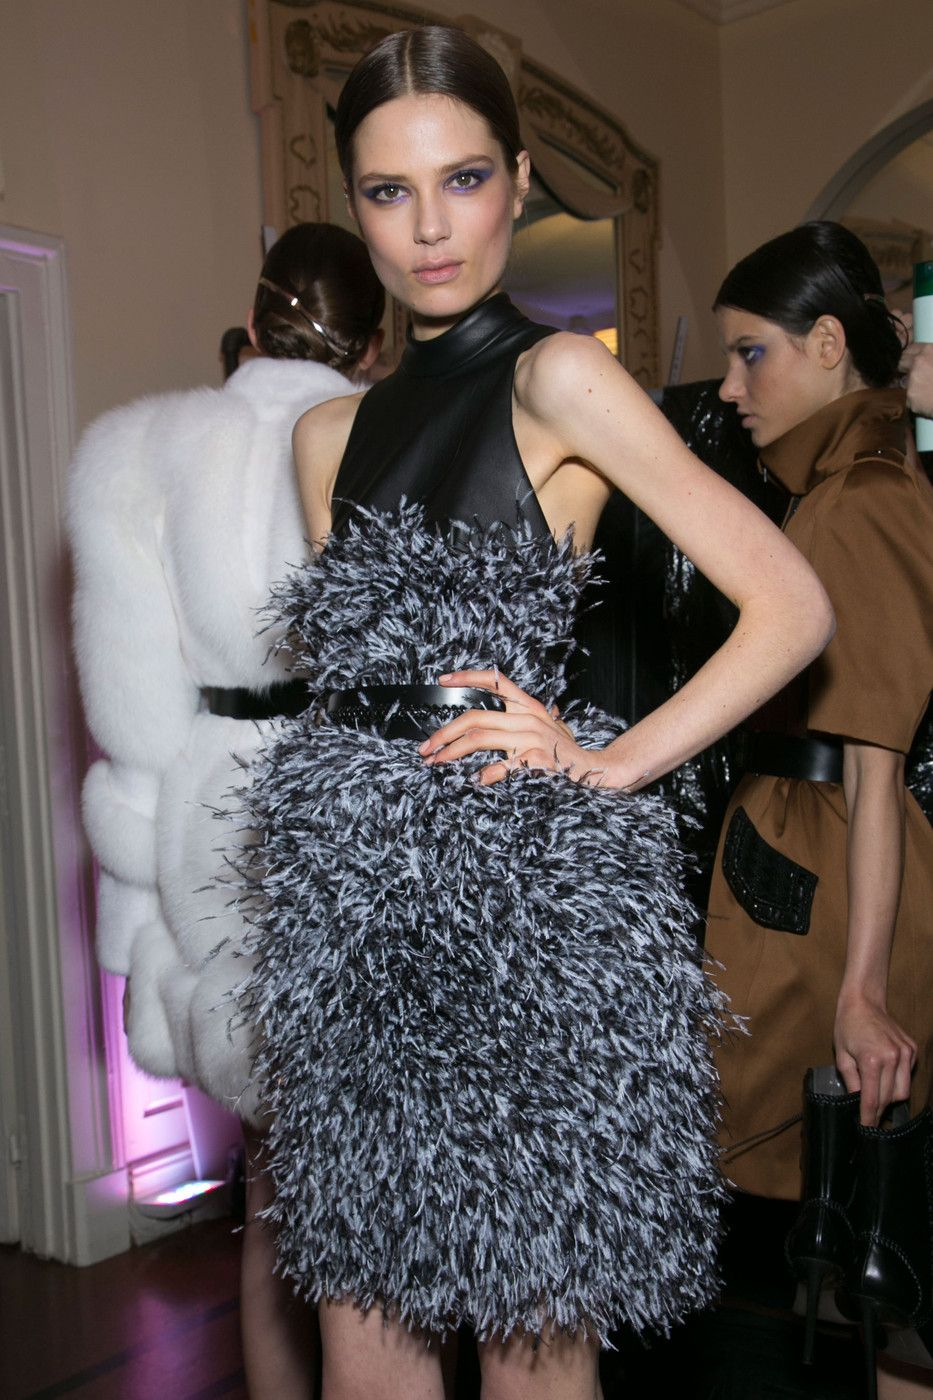 Jason_Wu_Fall_2013_Backstage_Wi_Cu_OR4_Ha0x